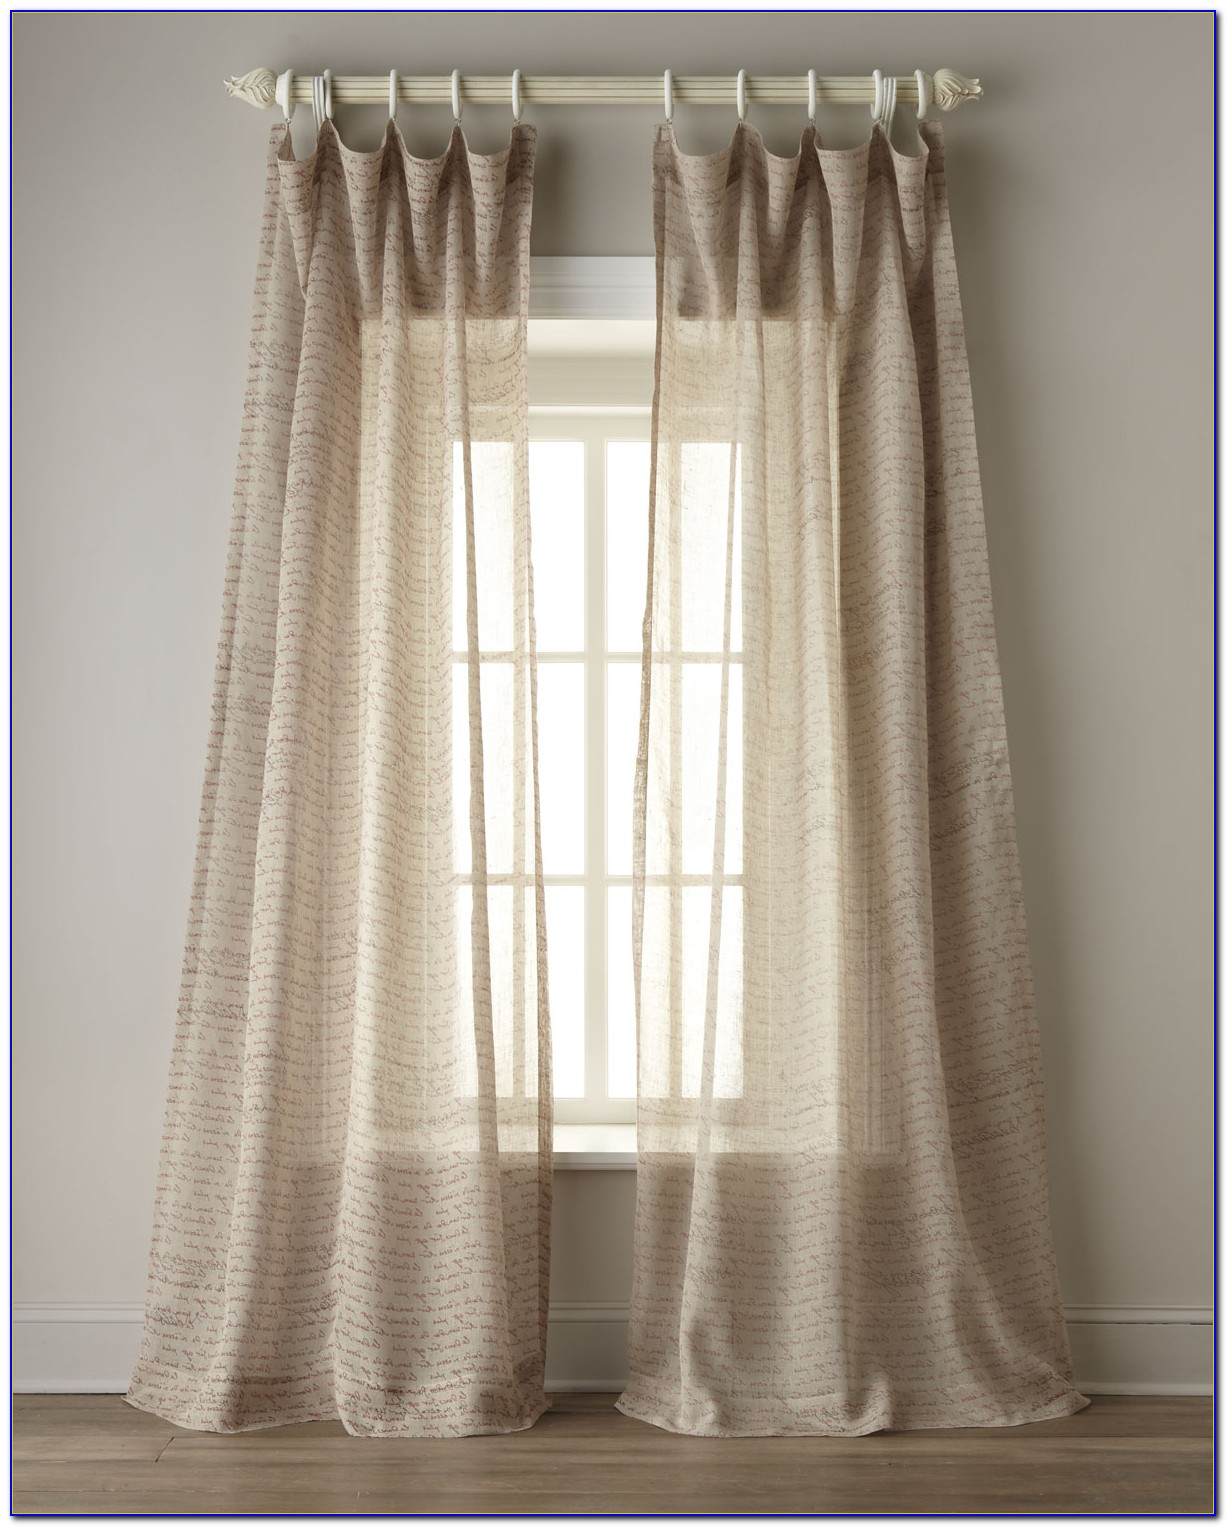 Anna's Linens Curtain Panels